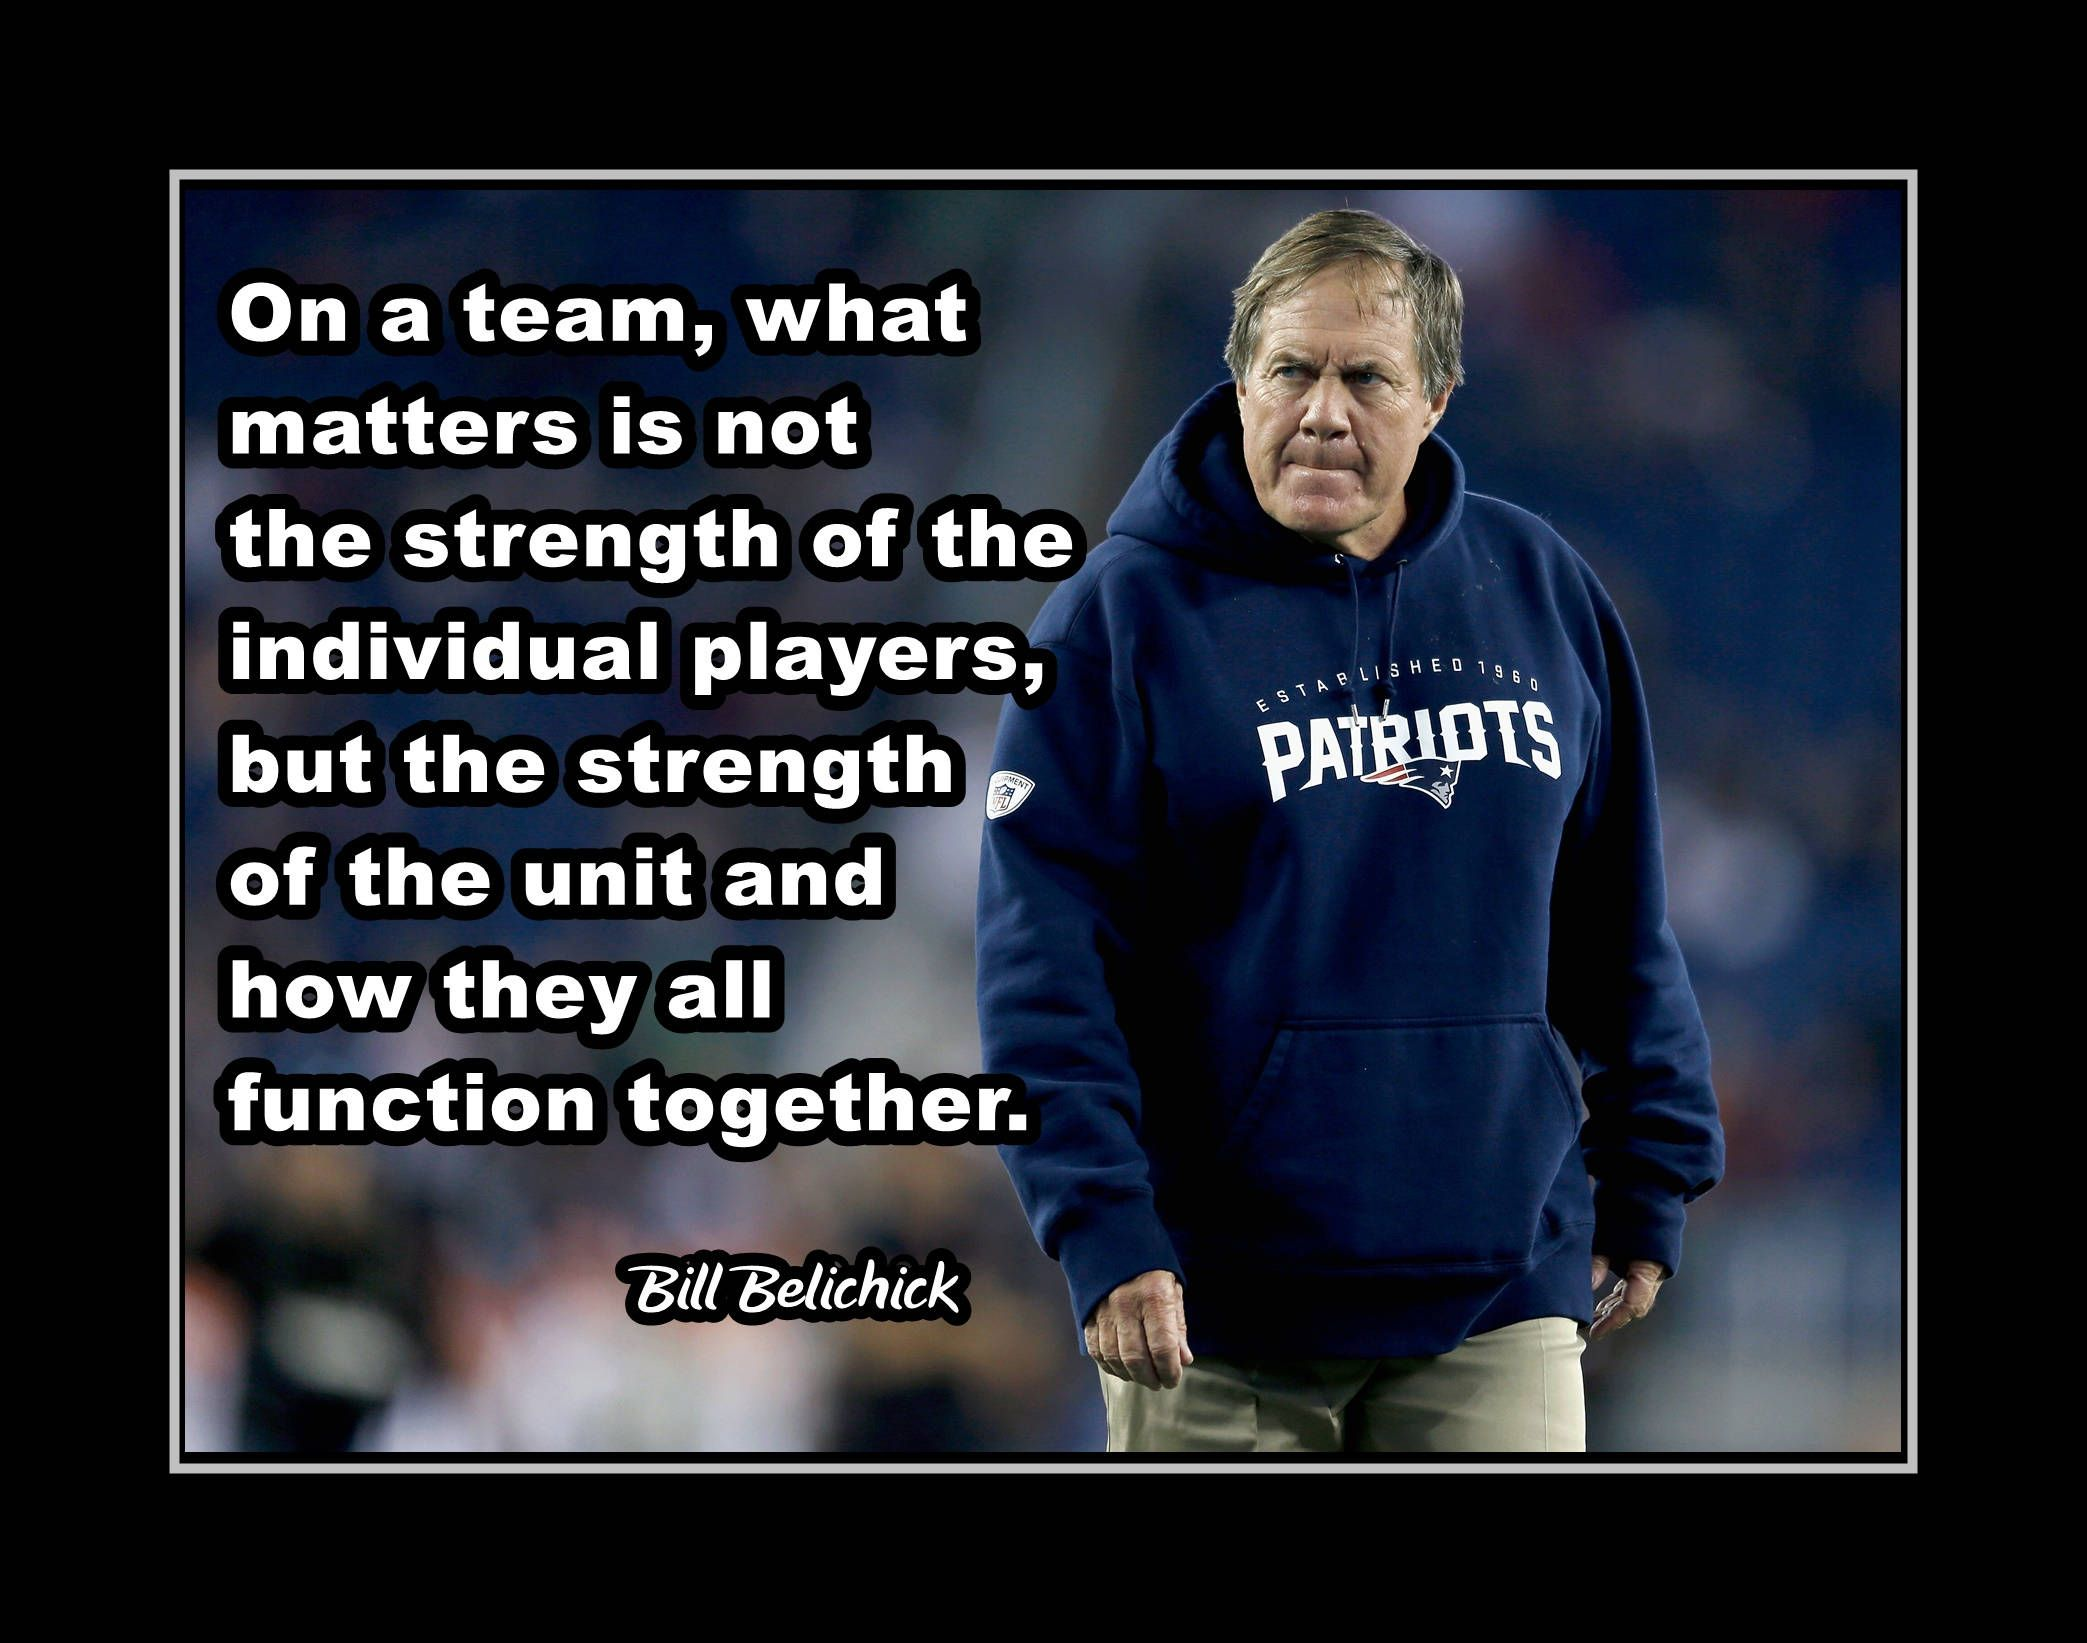 Bill belichick patriots football quote poster gift